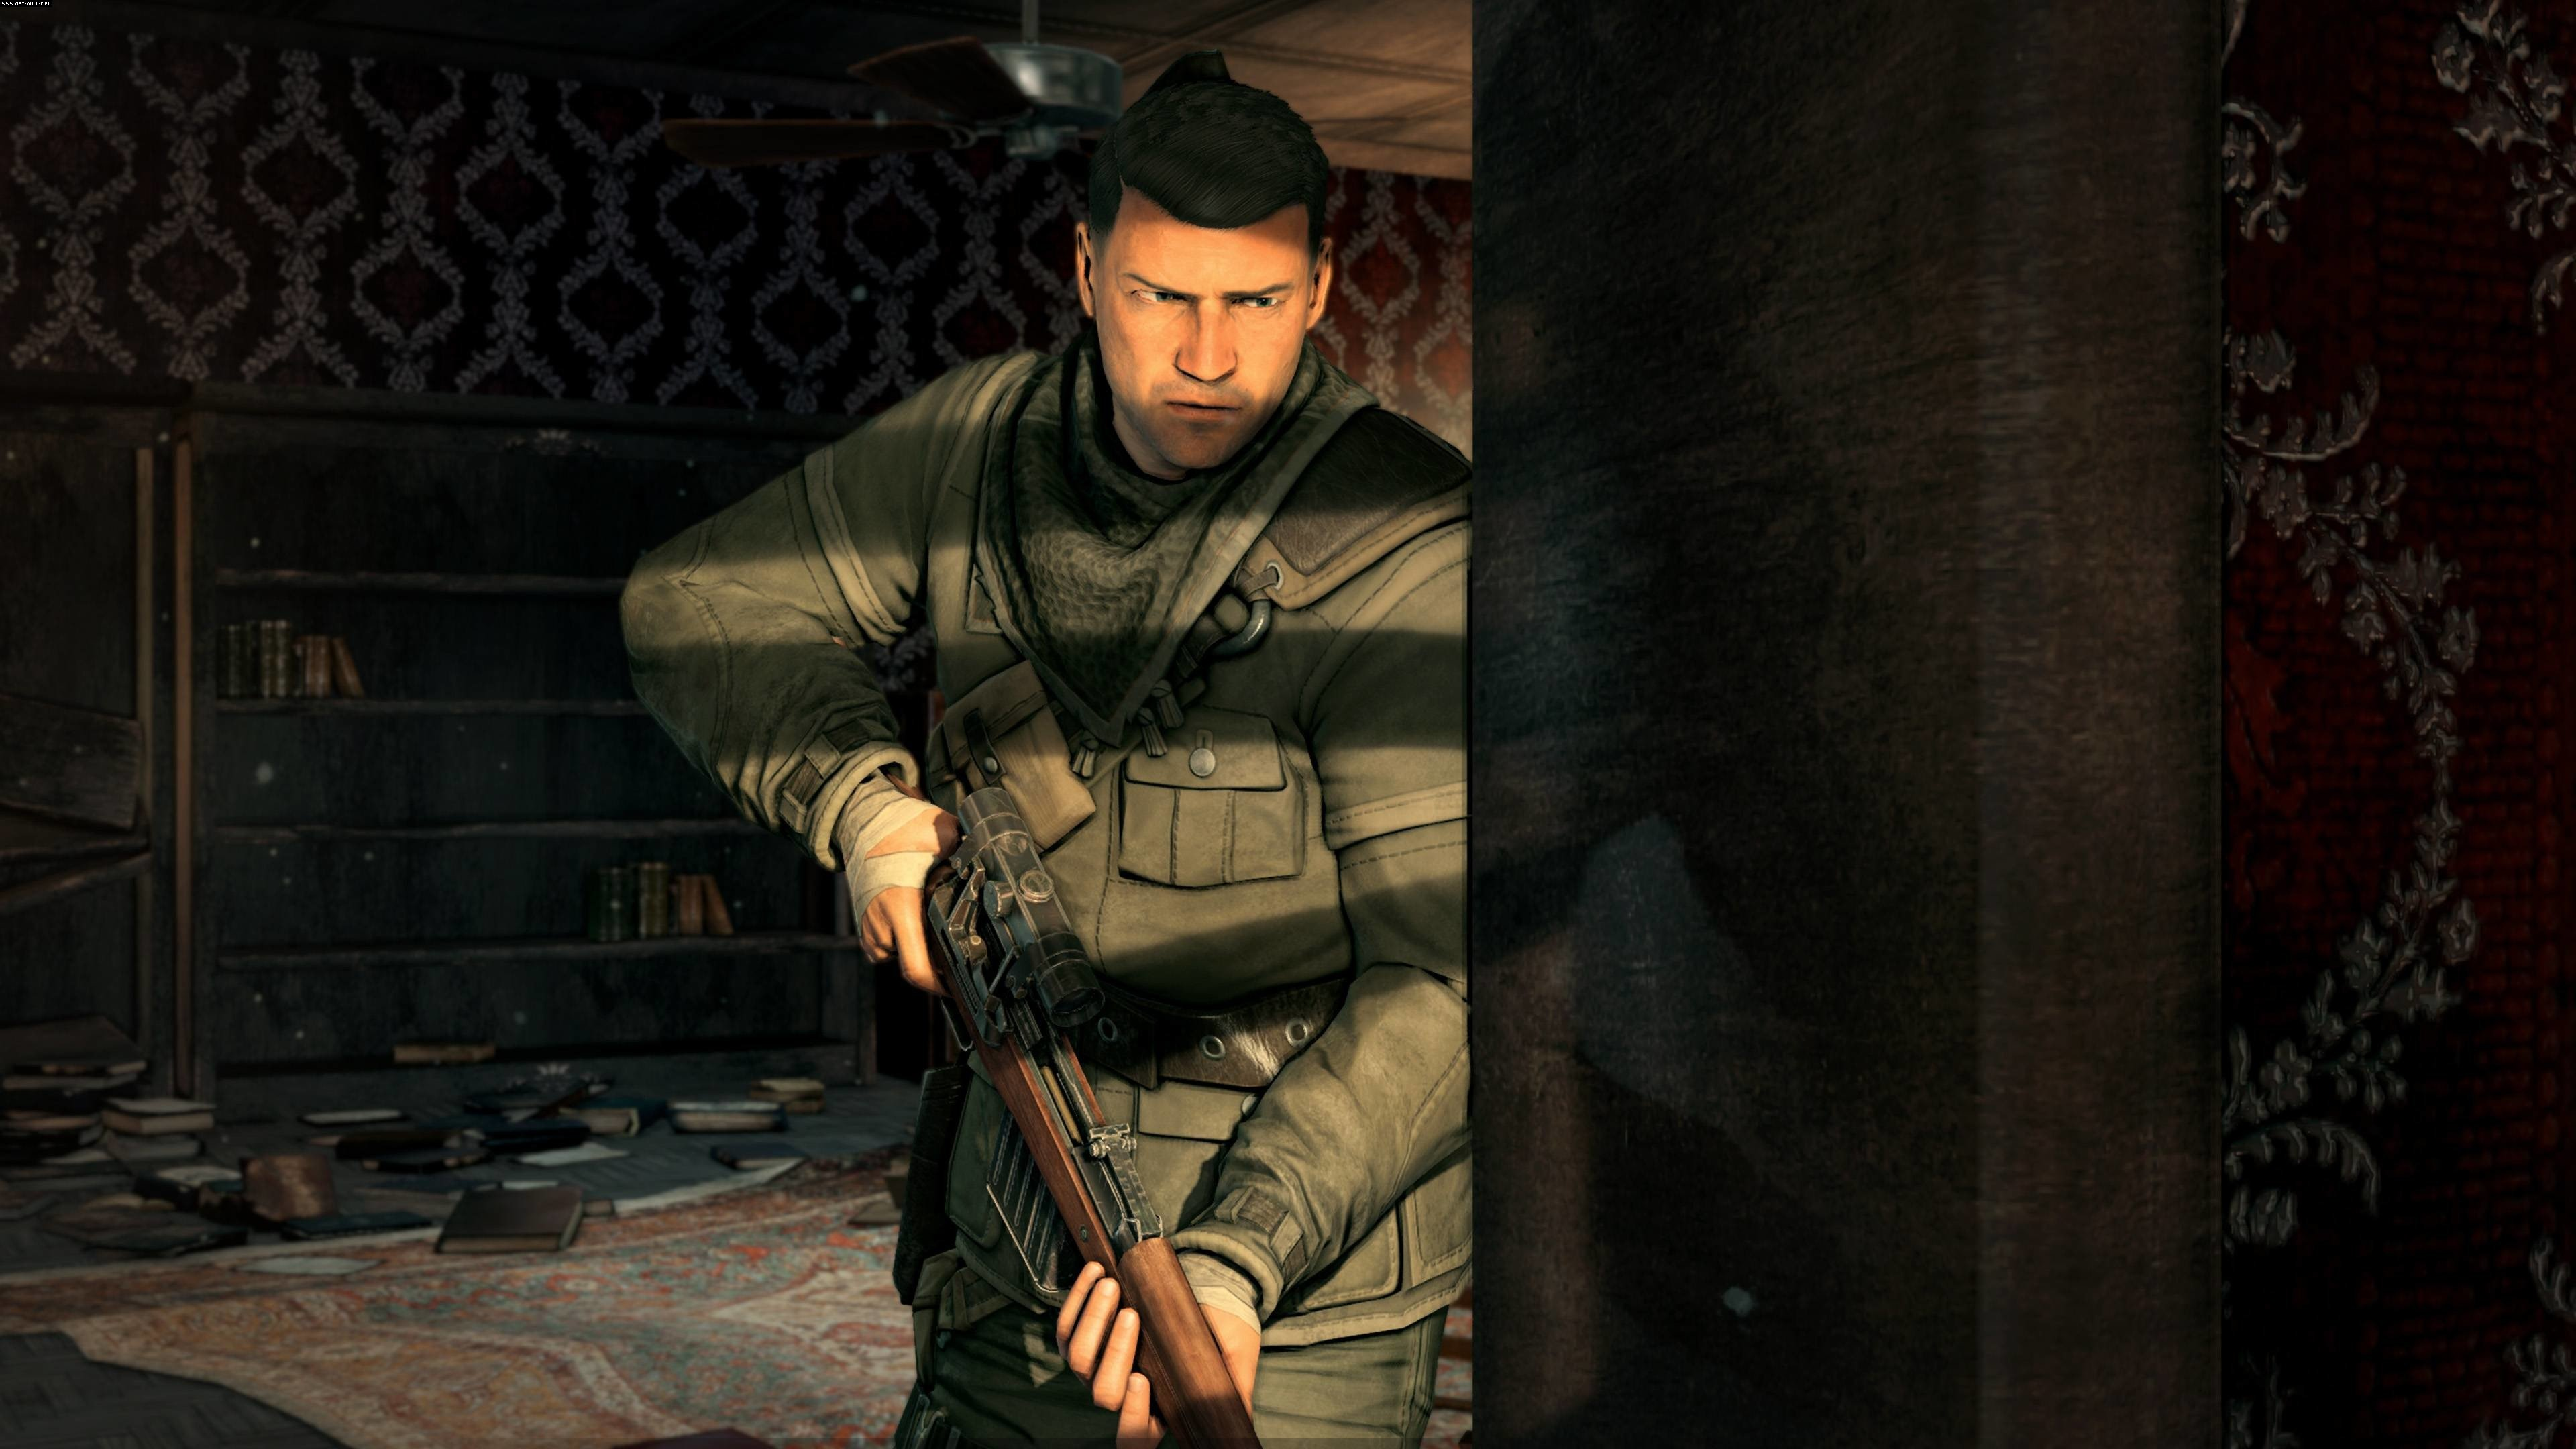 Sniper Elite V2 Remastered PC, PS4, XONE, Switch Games Image 5/8, Rebellion